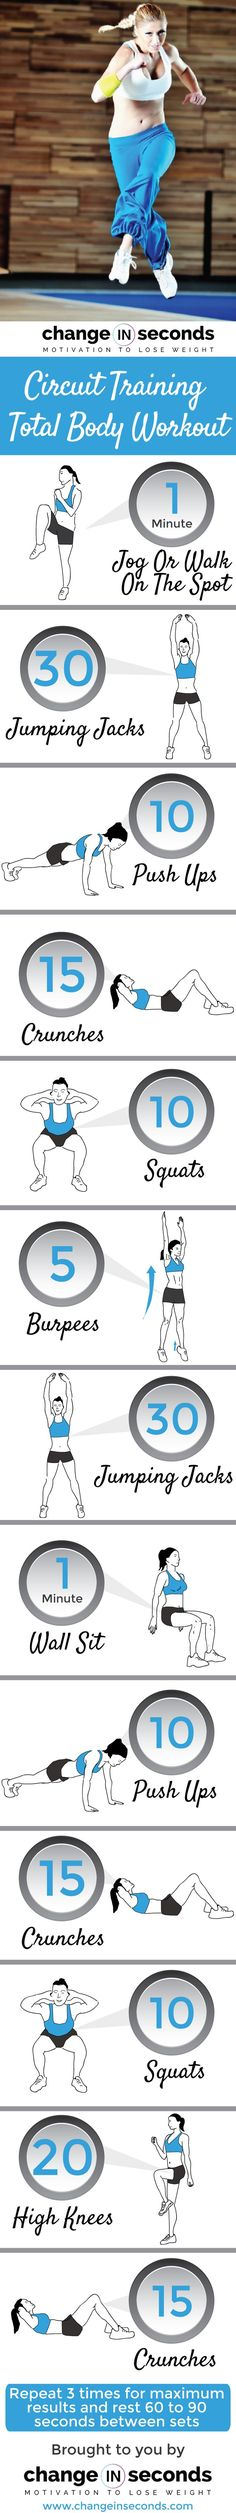 List of exercises & instructions for circuit training total body workout:  1 Minute Jog Or Walk On The Spot 30 Jumping Jacks 10 Push Ups 15 Crunches 10 Squats 5 Burpees 30 Jumping Jacks 1 Minute Wall Sit 10 Push Ups 15 Crunches 10 Squats 20 High Knees 15 Crunches  Rest betwee